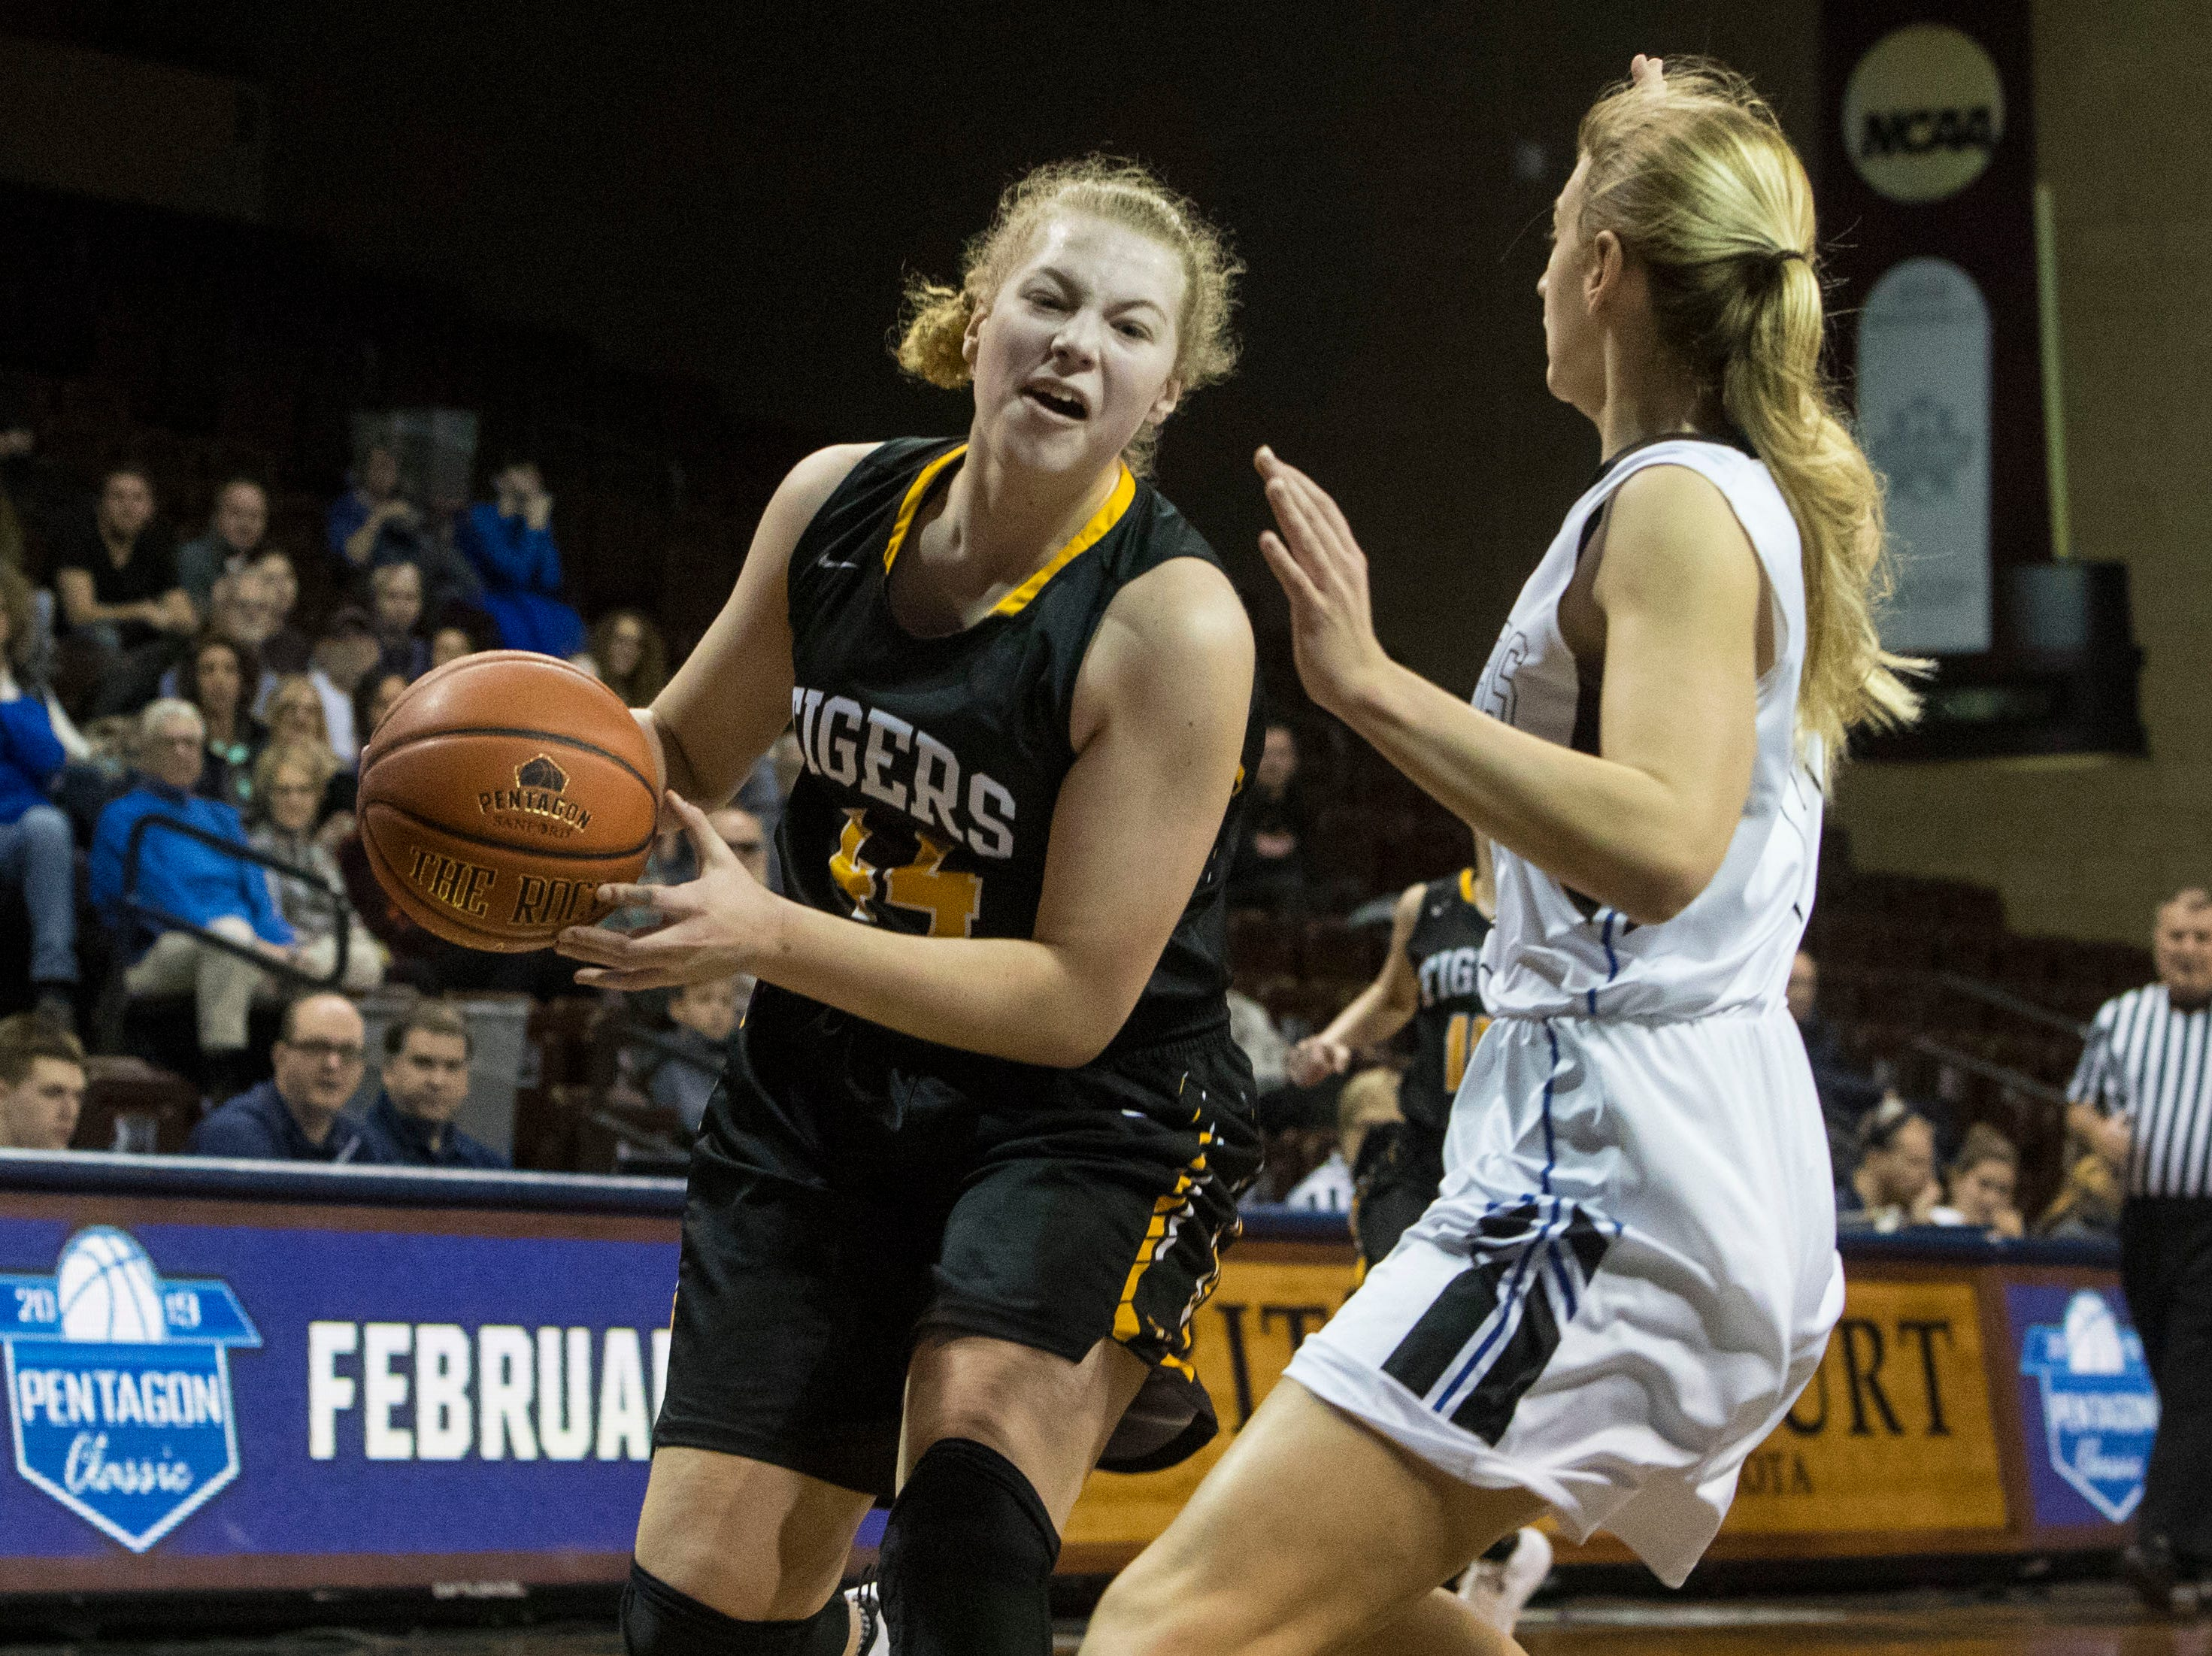 Hutchinson's Brynn Beffert (44) dribbles the ball past Sioux Falls Christian player at the Hoop City Classic at the Sanford Pentagon in Sioux Falls, S.D., Saturday, Dec. 29, 2018.